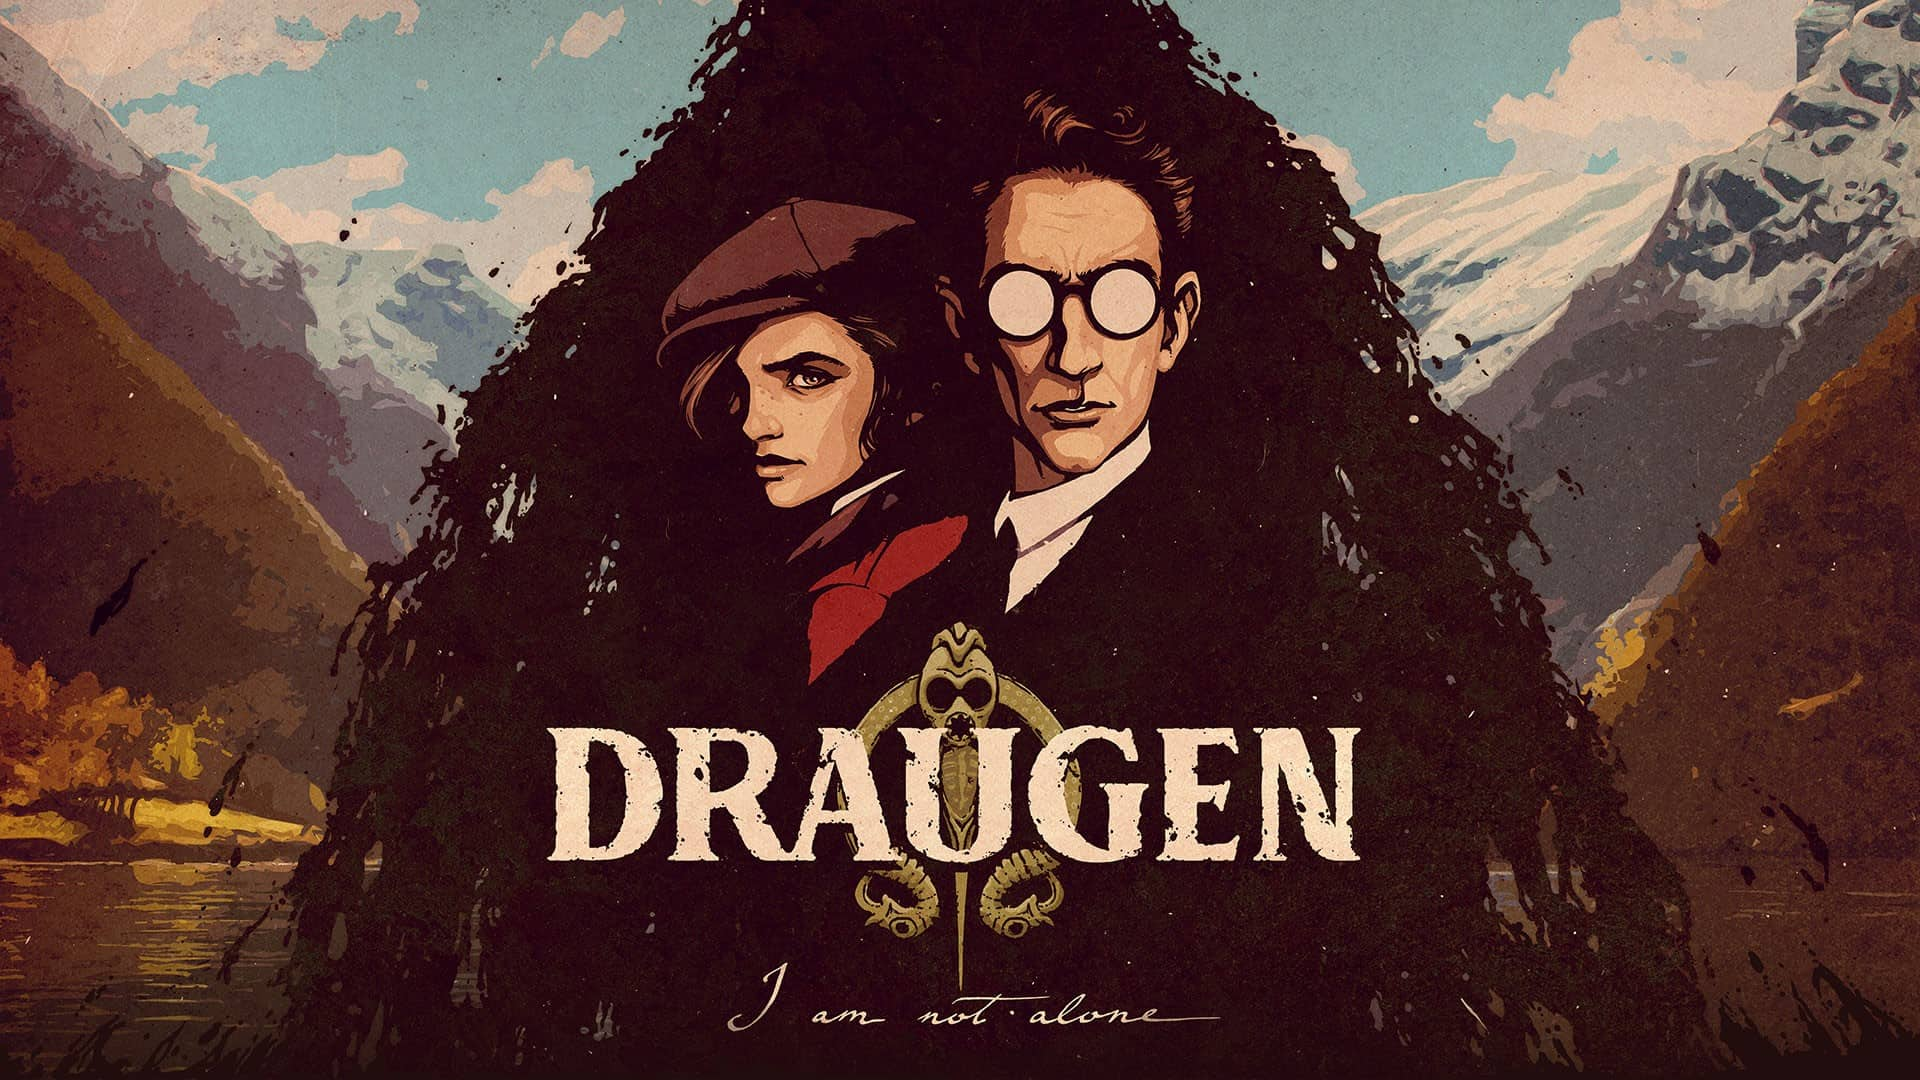 Draugen - SLOW-BURN THRILLER DRAUGEN COMING TO CONSOLES FEBRUARY 21ST